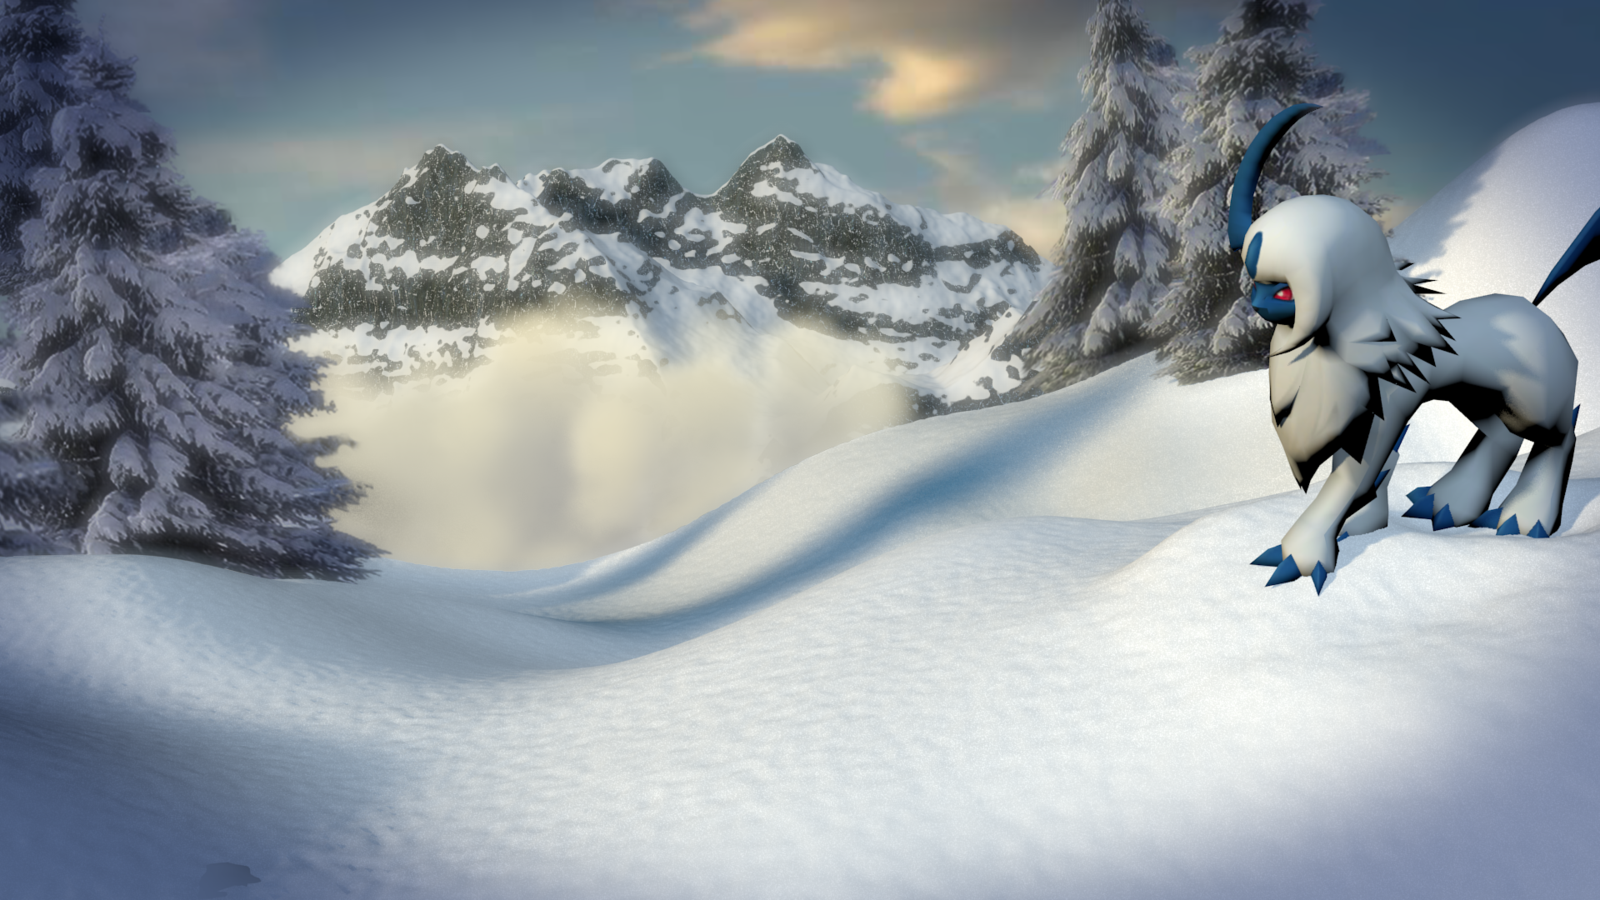 Mountaintop Absol [3D M0DEL] by TheModerator 1600x900